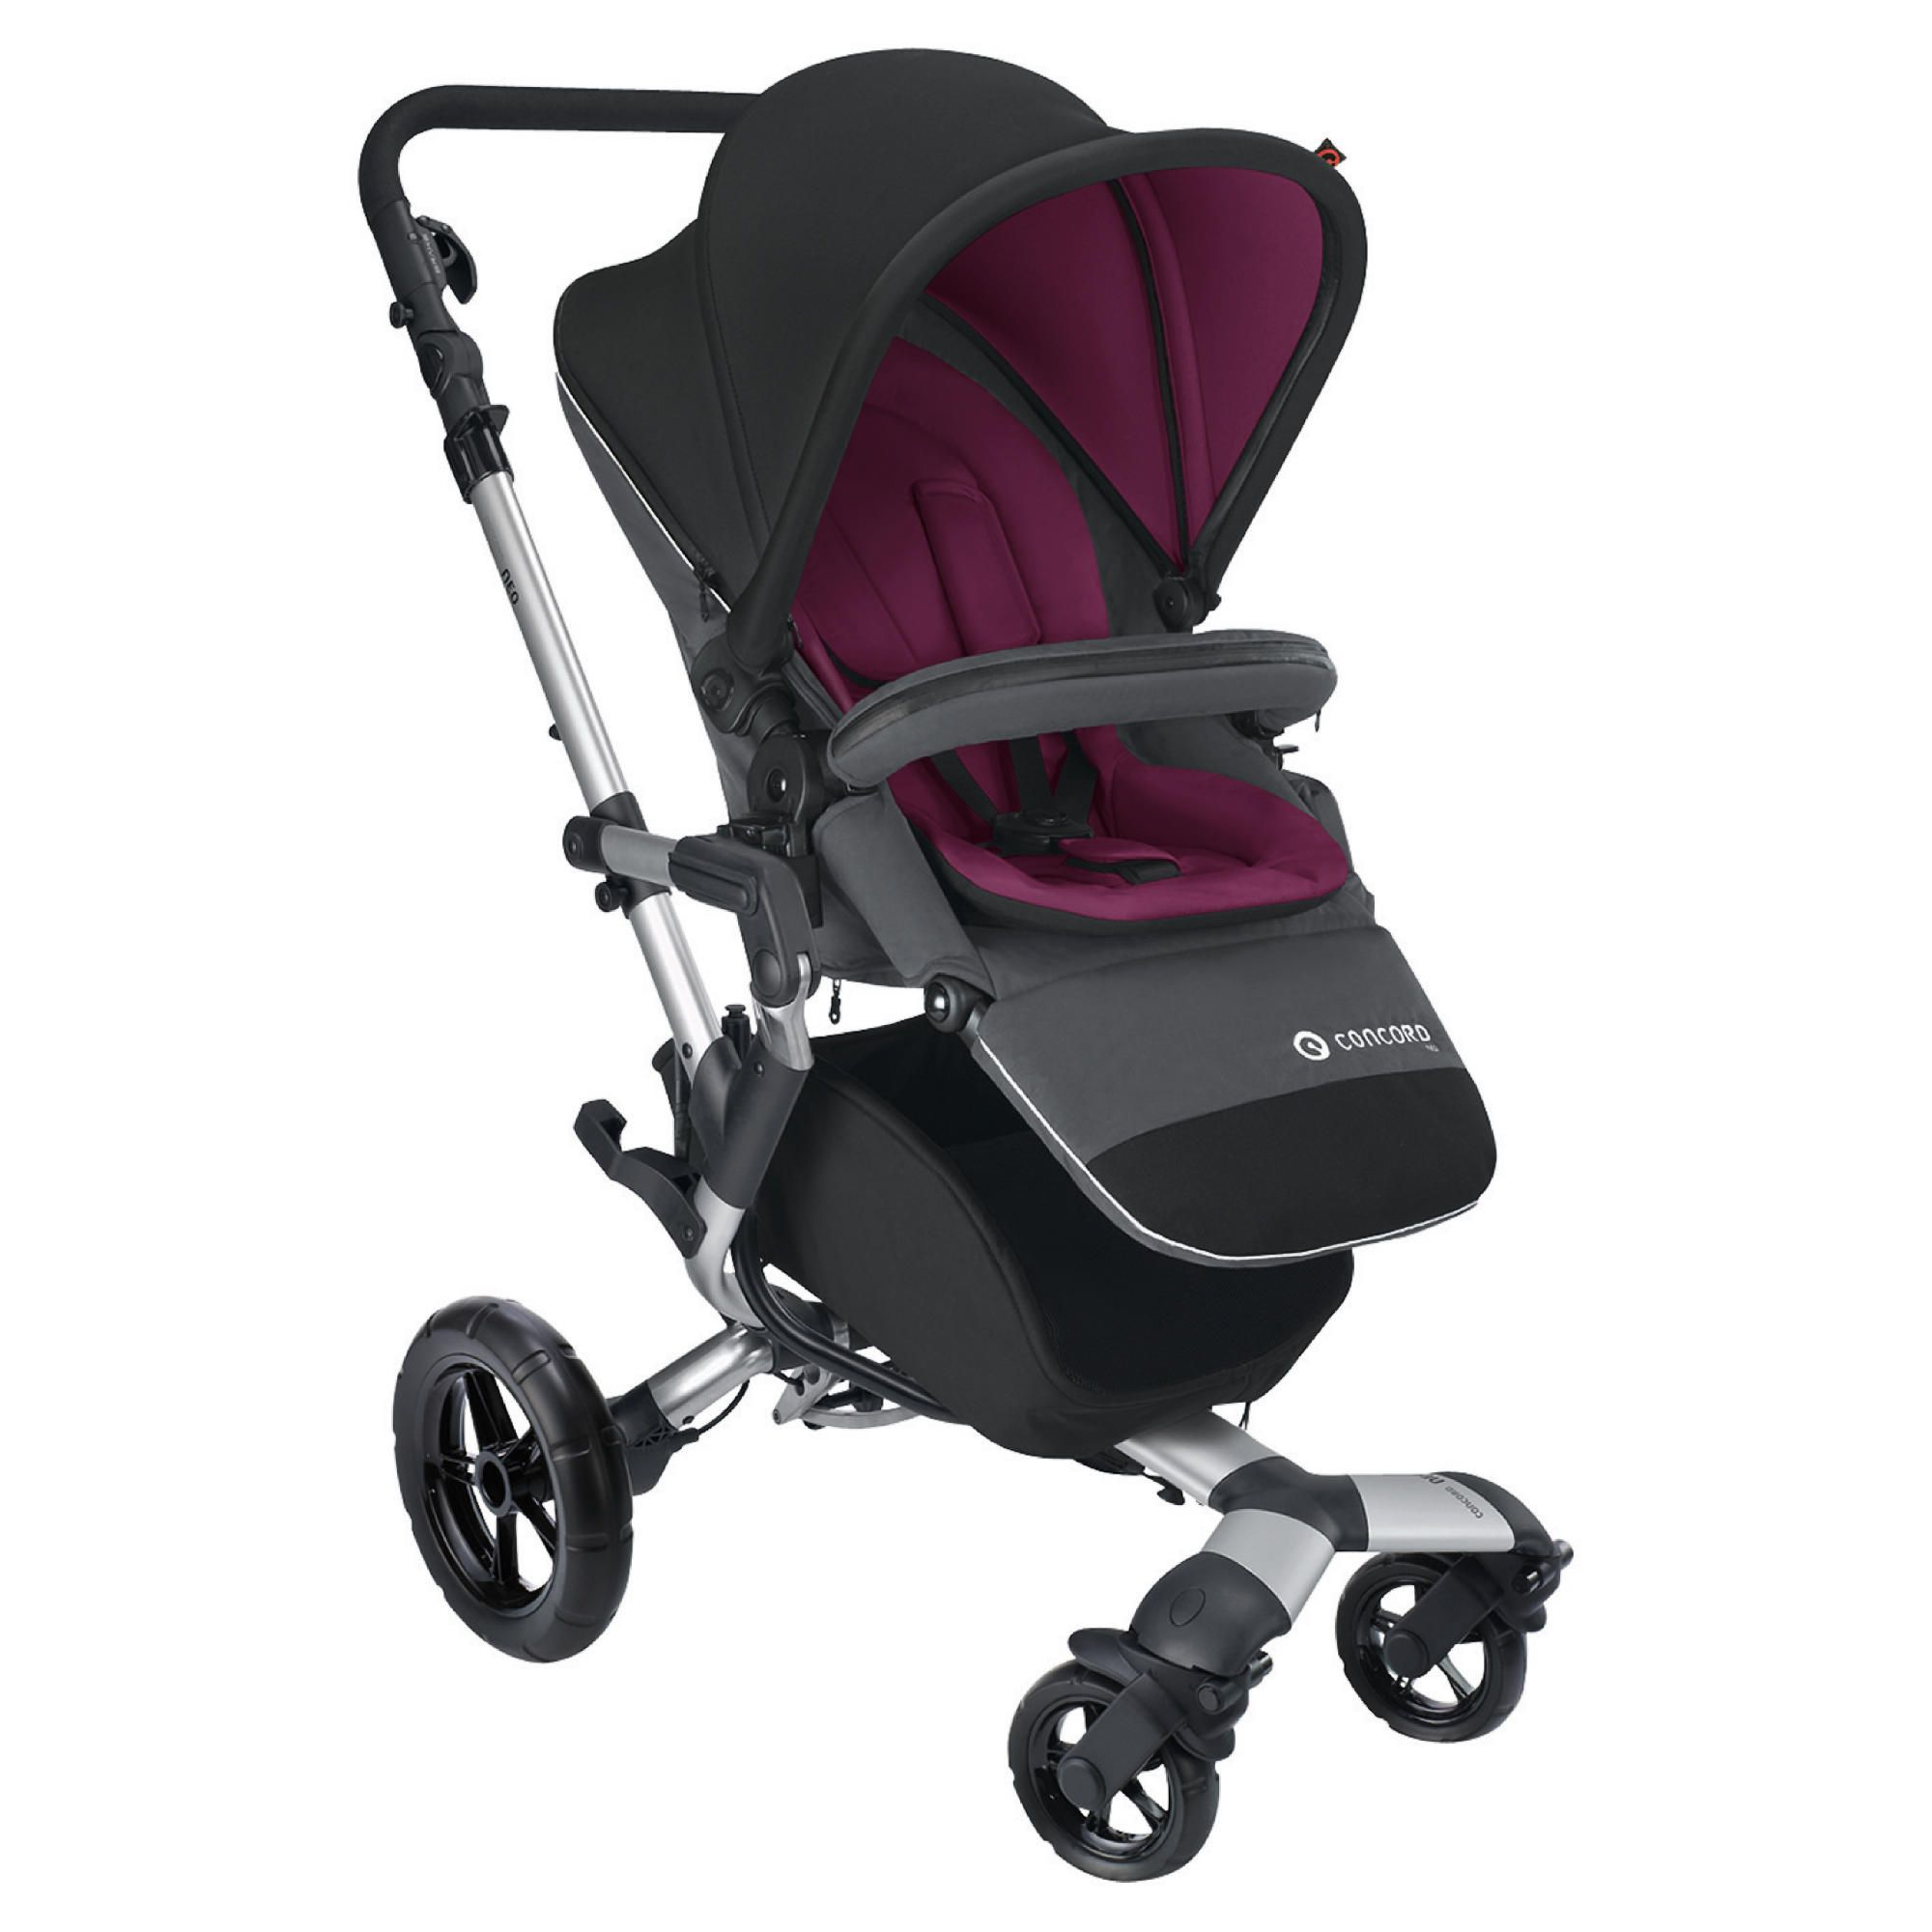 Concord Neo Pushchair Candy at Tesco Direct